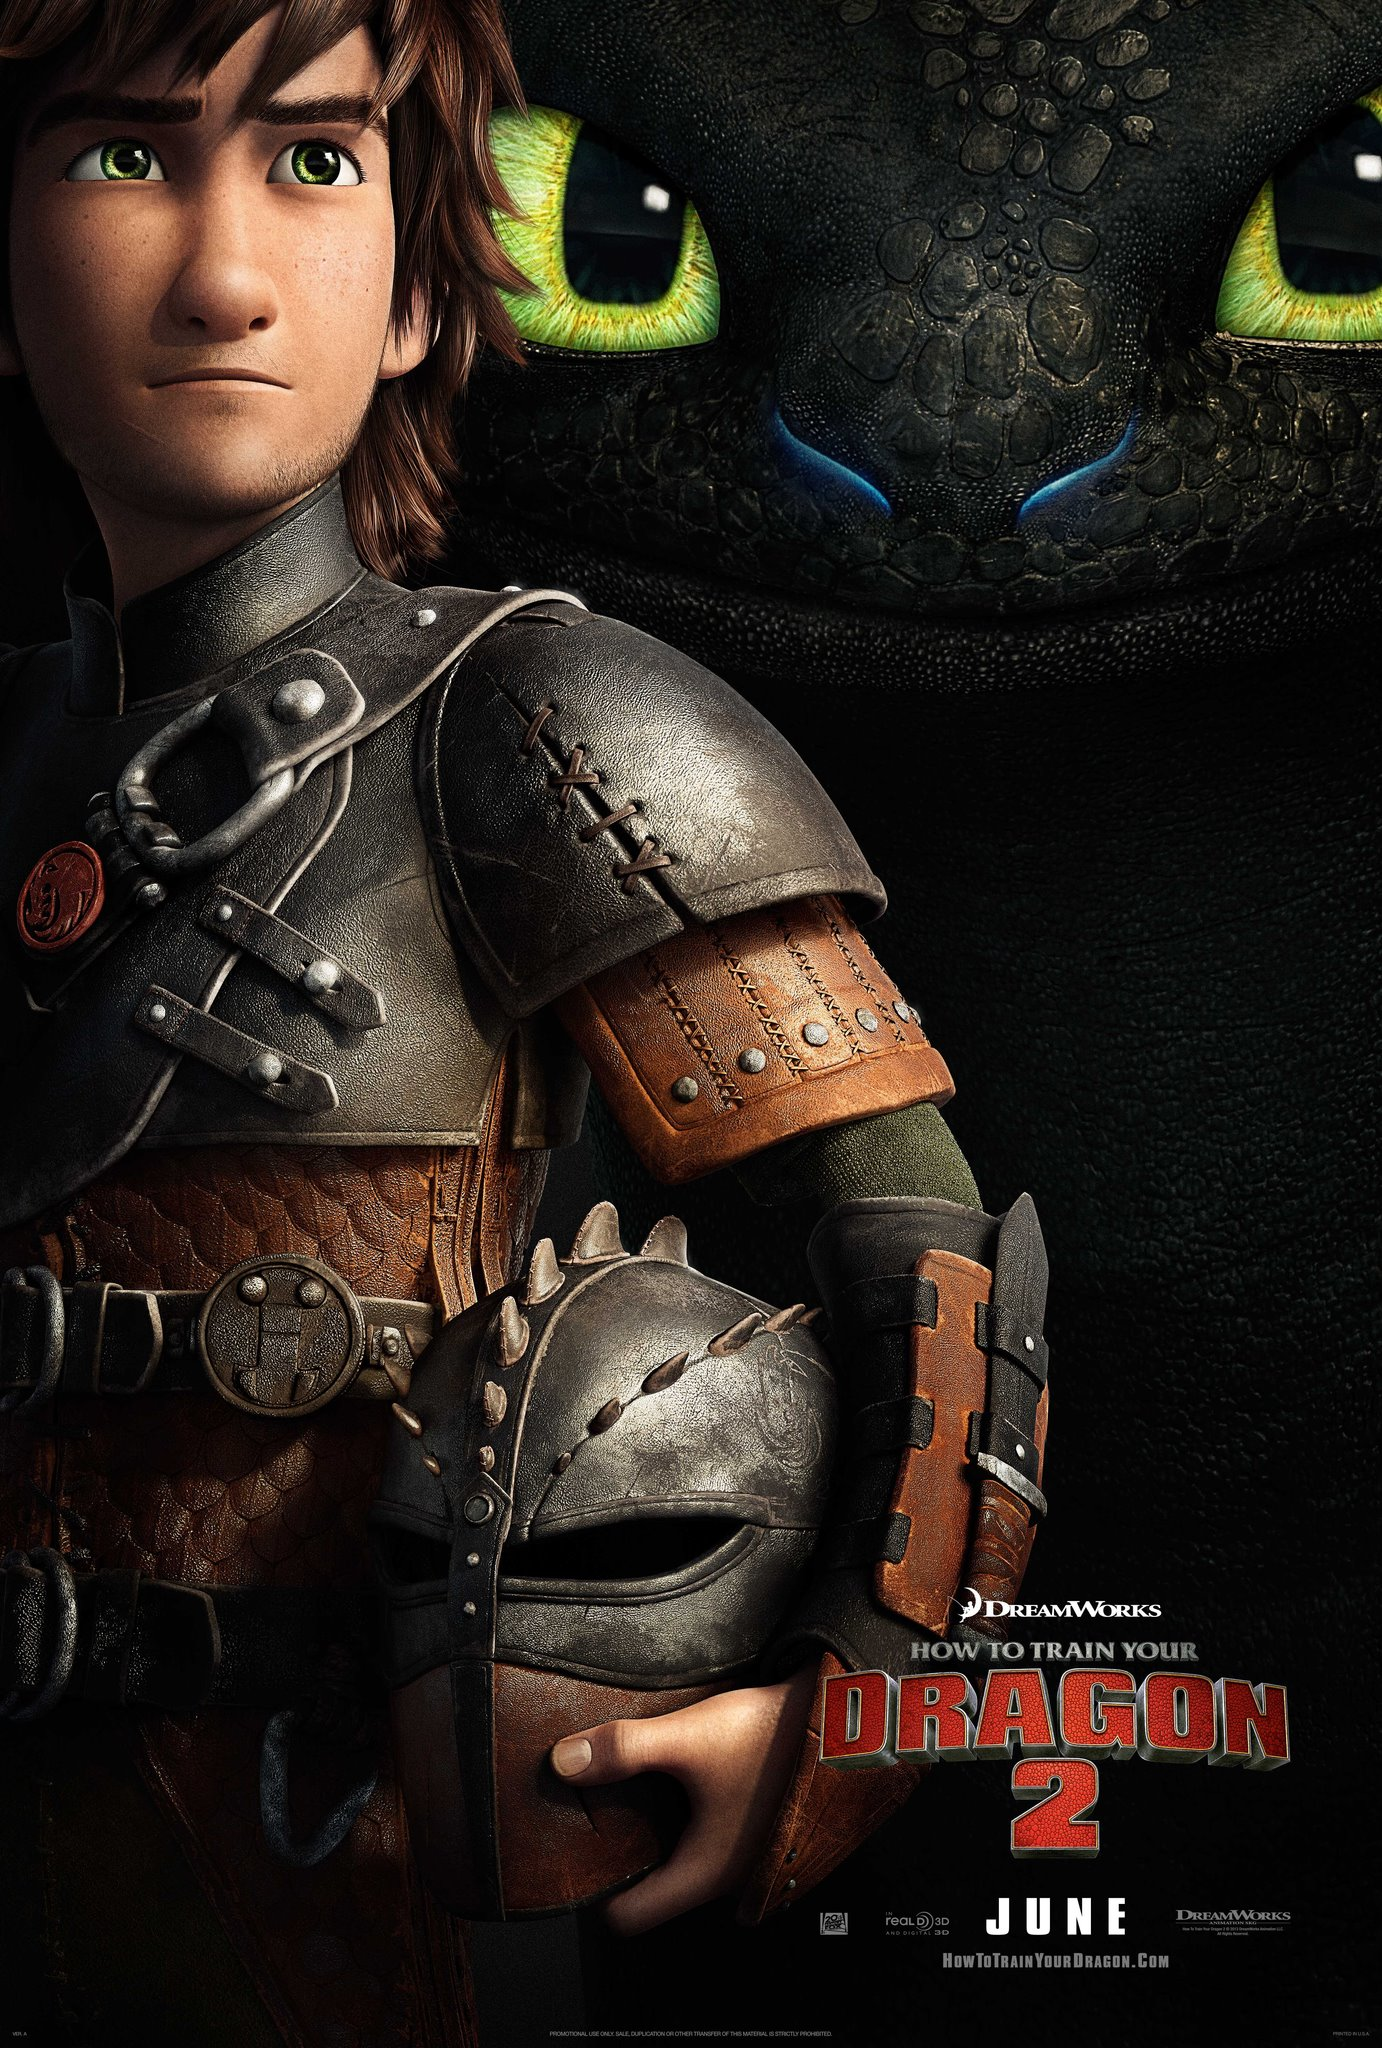 How To Train Your Dragon 2 Official Movie Poster Desktop Wallpaper